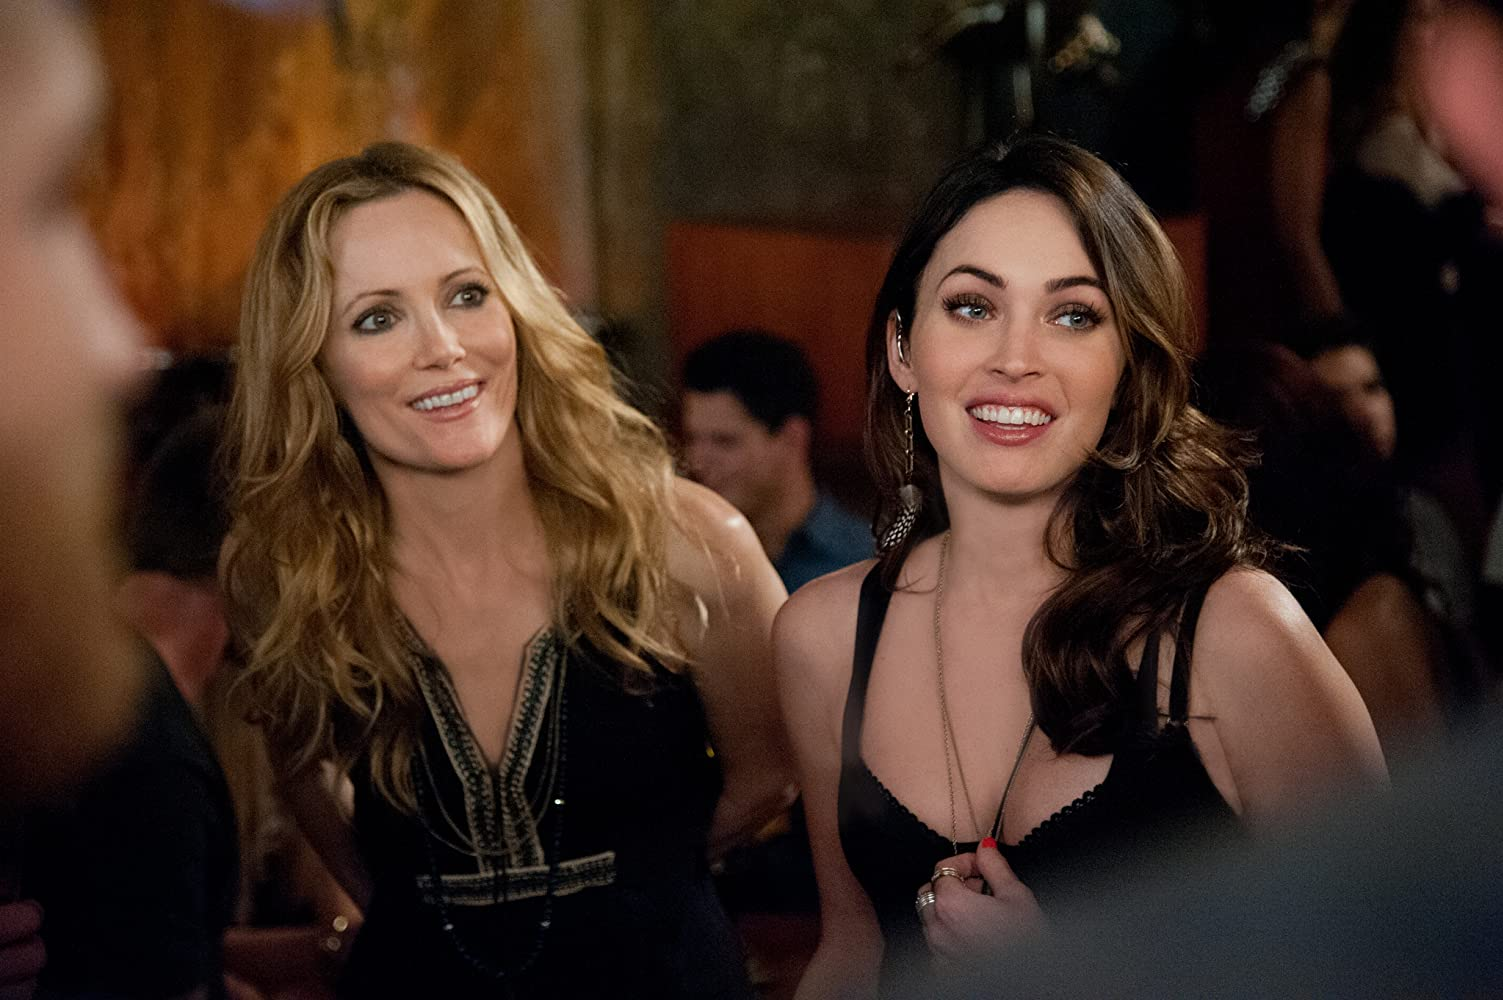 Leslie Mann and Megan Fox in This Is 40 (2012)